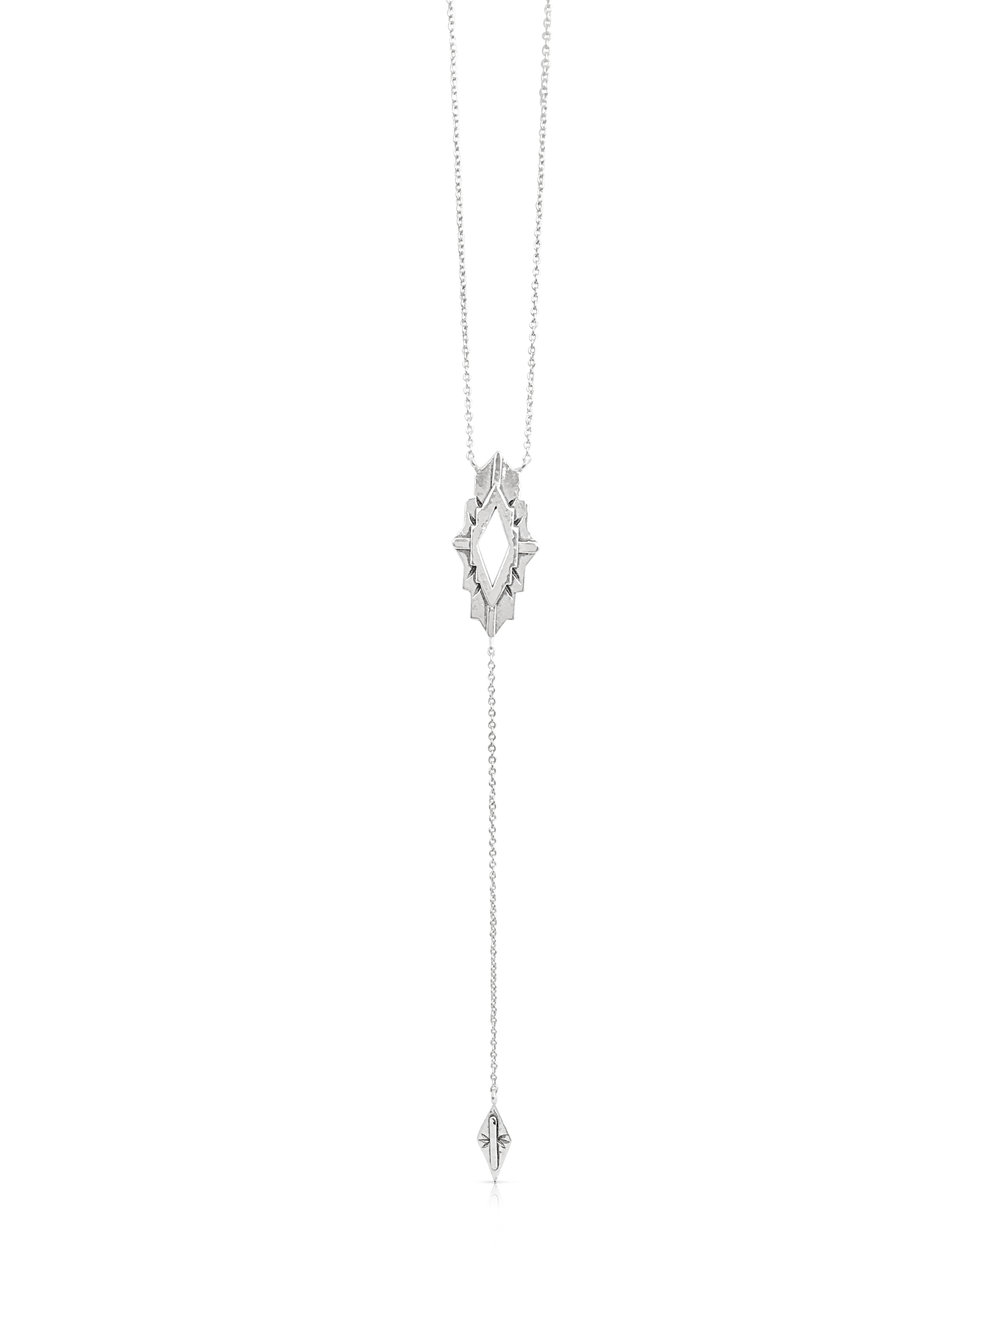 Sierra Winter Jewelry Astra Necklace.jpg